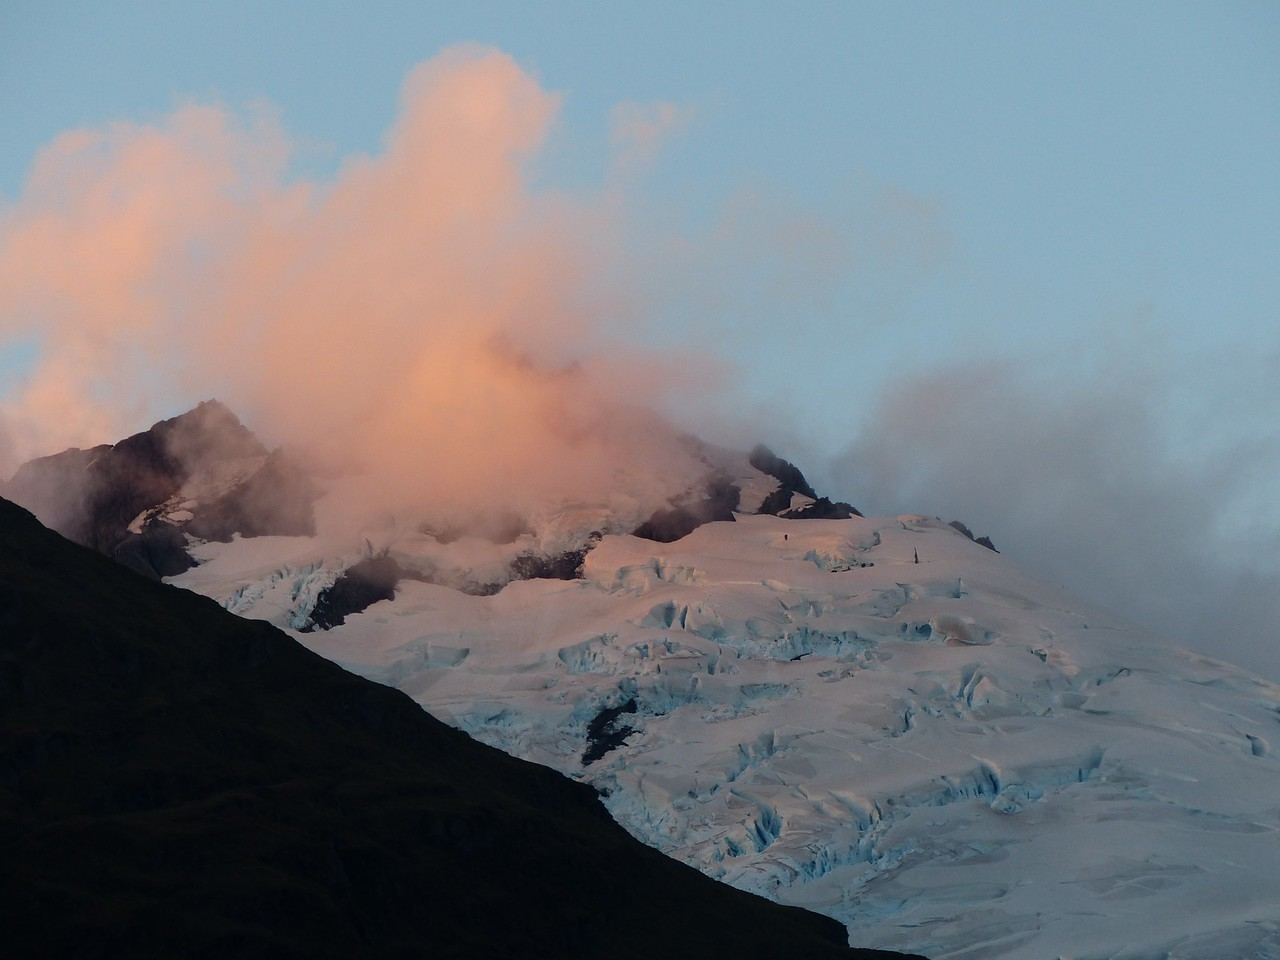 Mt. Aspiring backpack - view  from the hut.